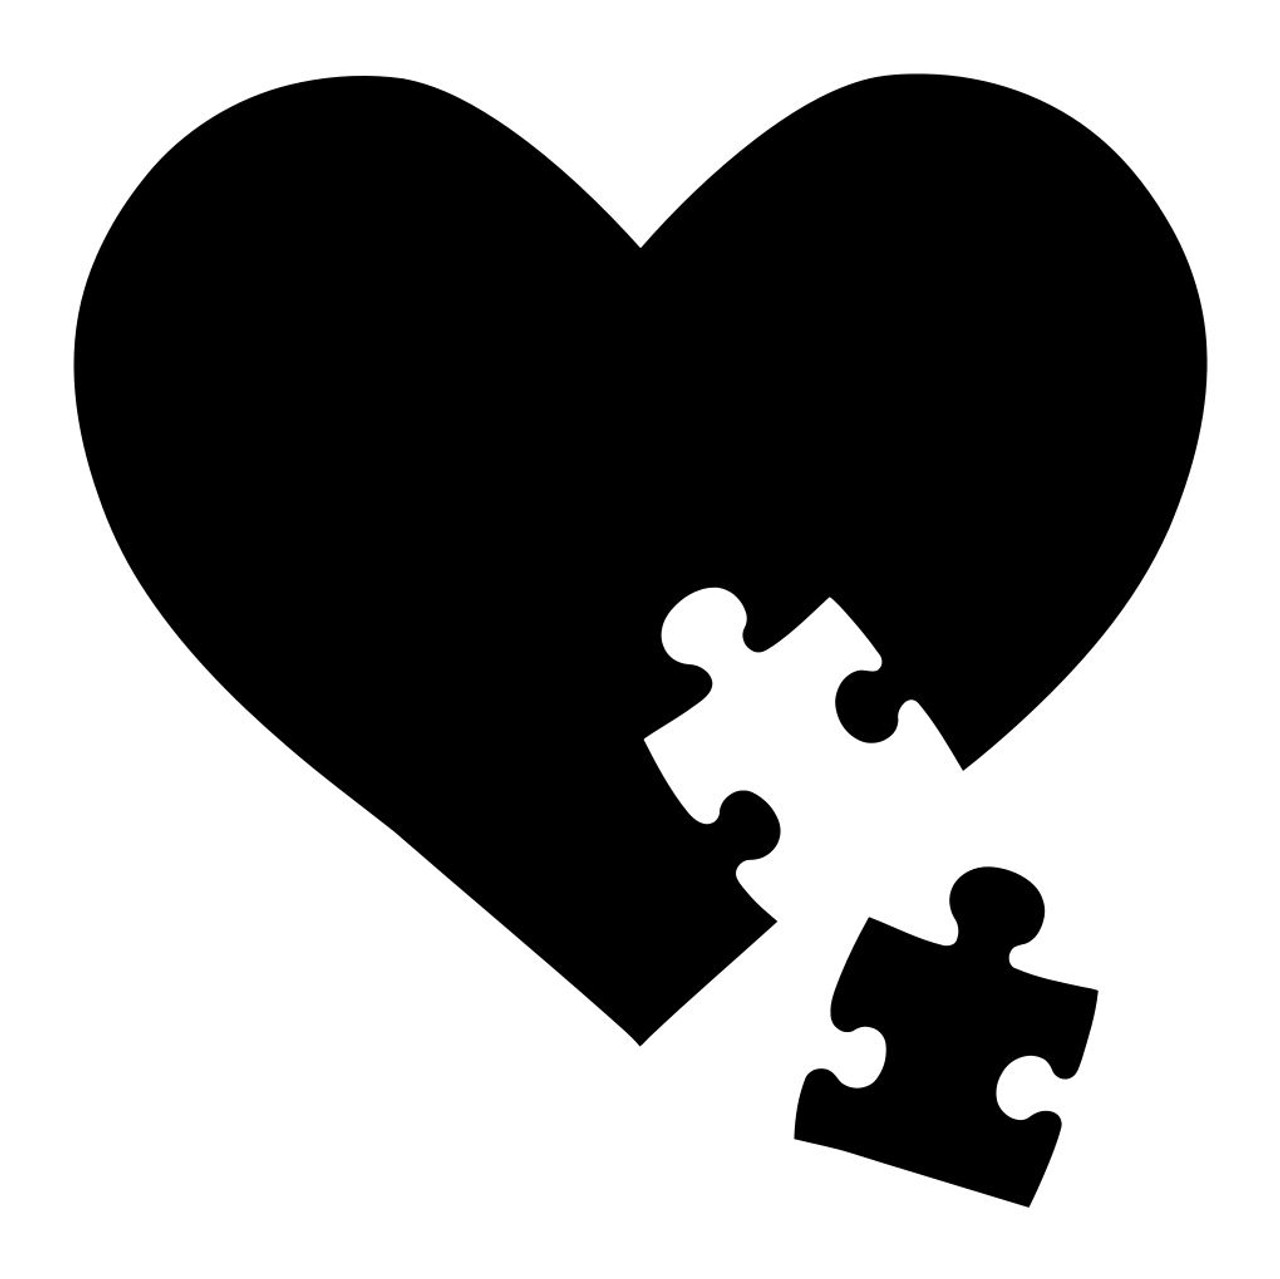 AUTISM AWARENESS V3 Vinyl Decal Sticker - Heart Puzzle Piece ...